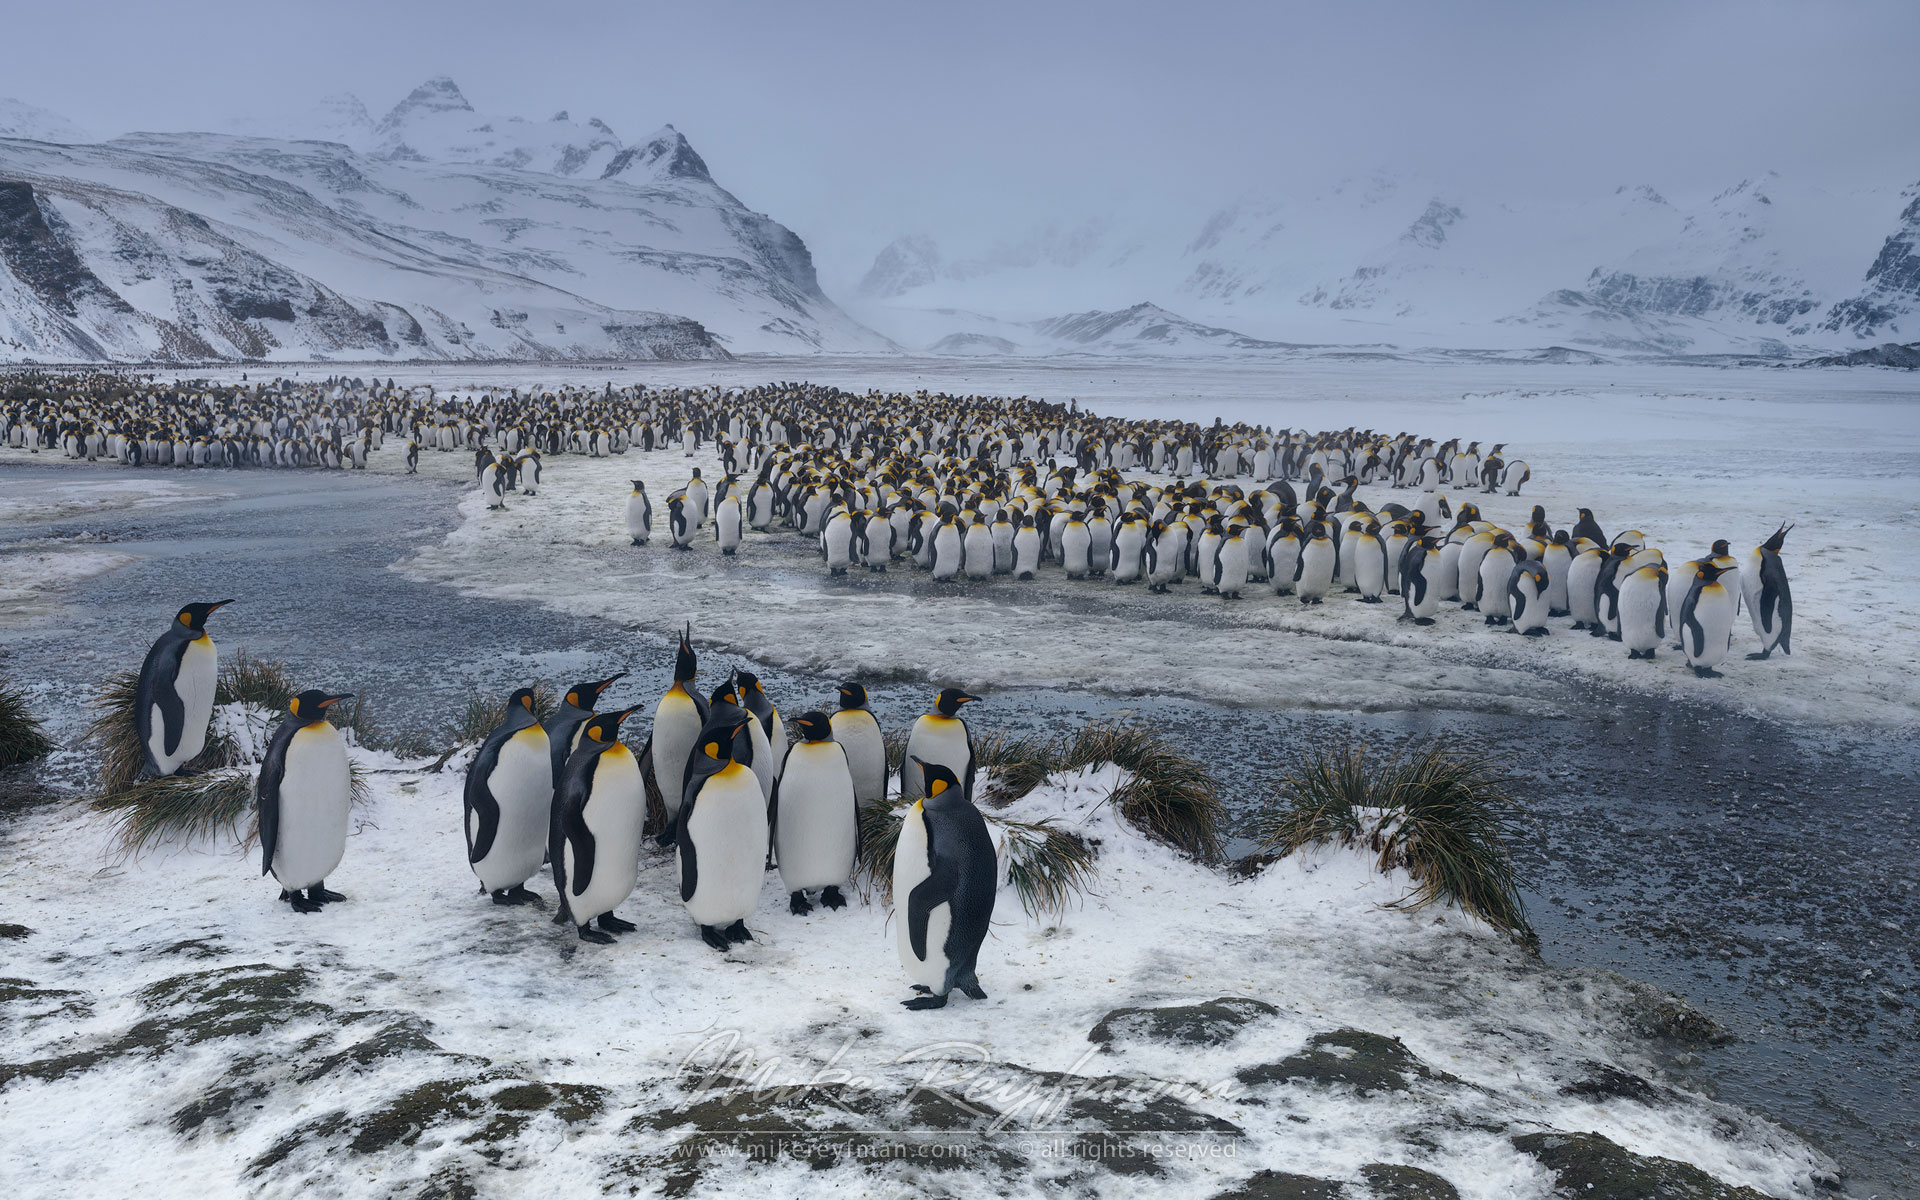 Terra Penguinia. King Penguin (Aptenodytes patagonicus) Colony, Salisbury Plain, South Georgia, Sub-Antarctic - King-Penguins-South-Georgia-Sub-Antarctic - Mike Reyfman Photography